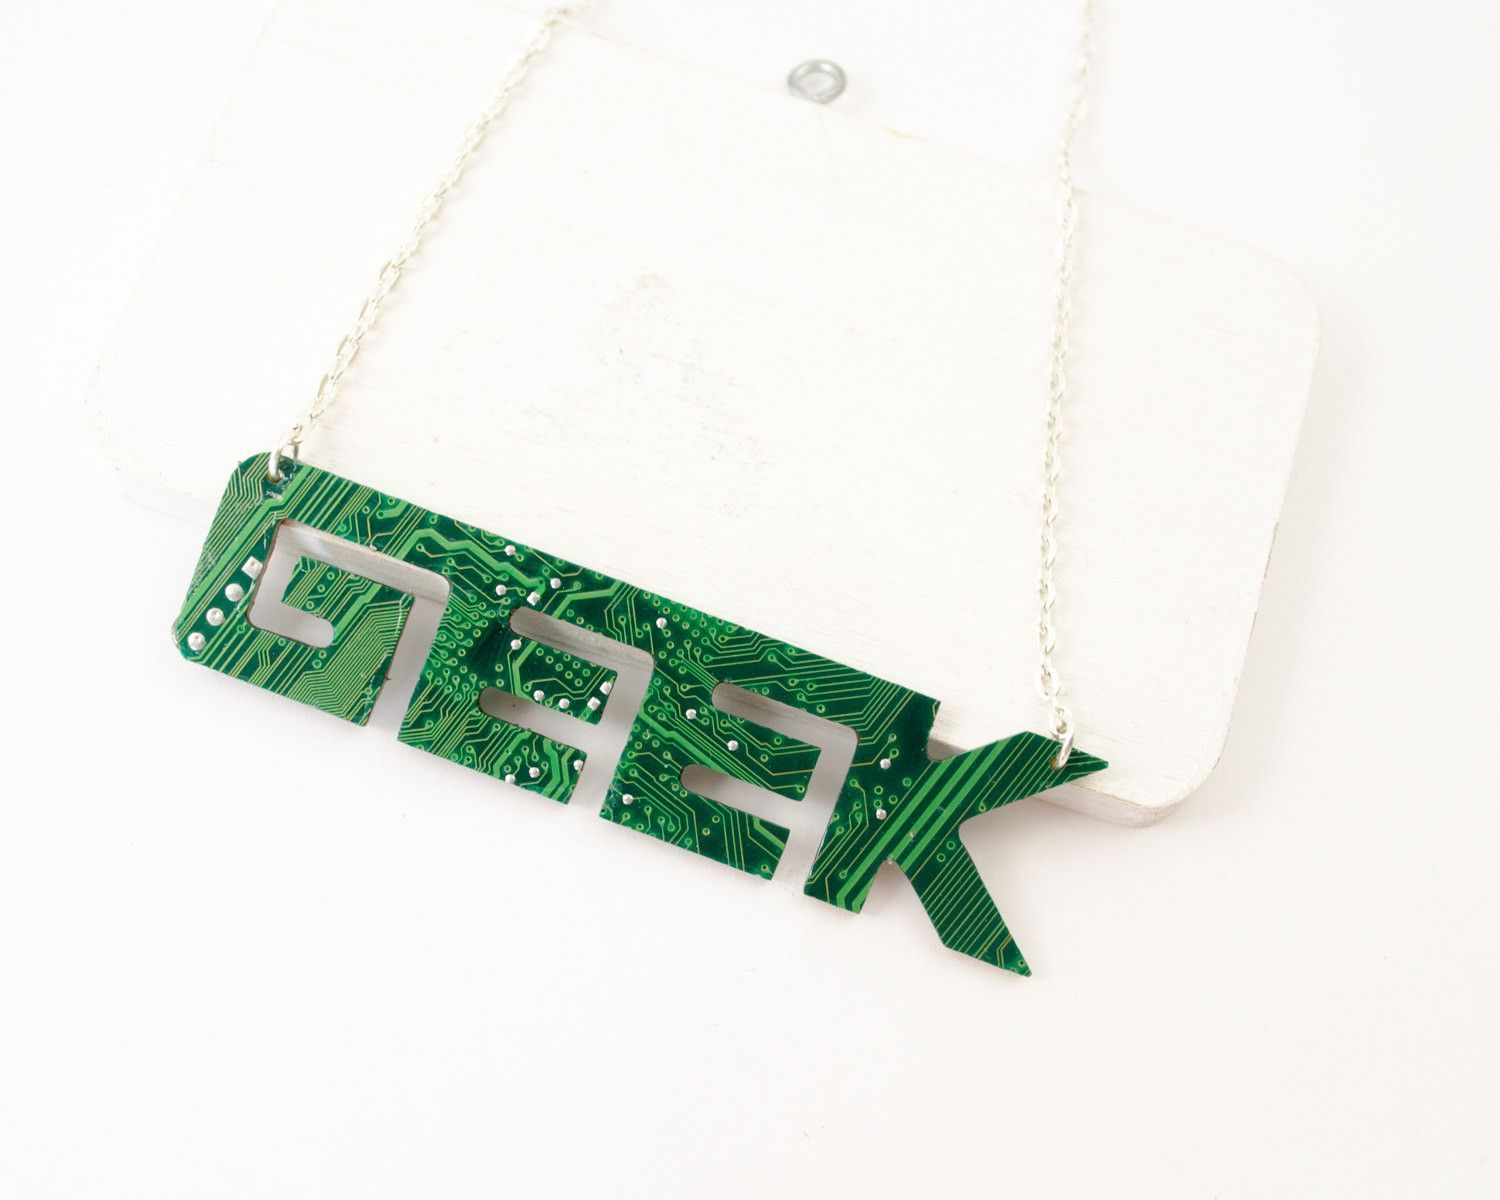 Circuit Board GEEK Necklace - Geeky Nameplate Jewelry | Products ...